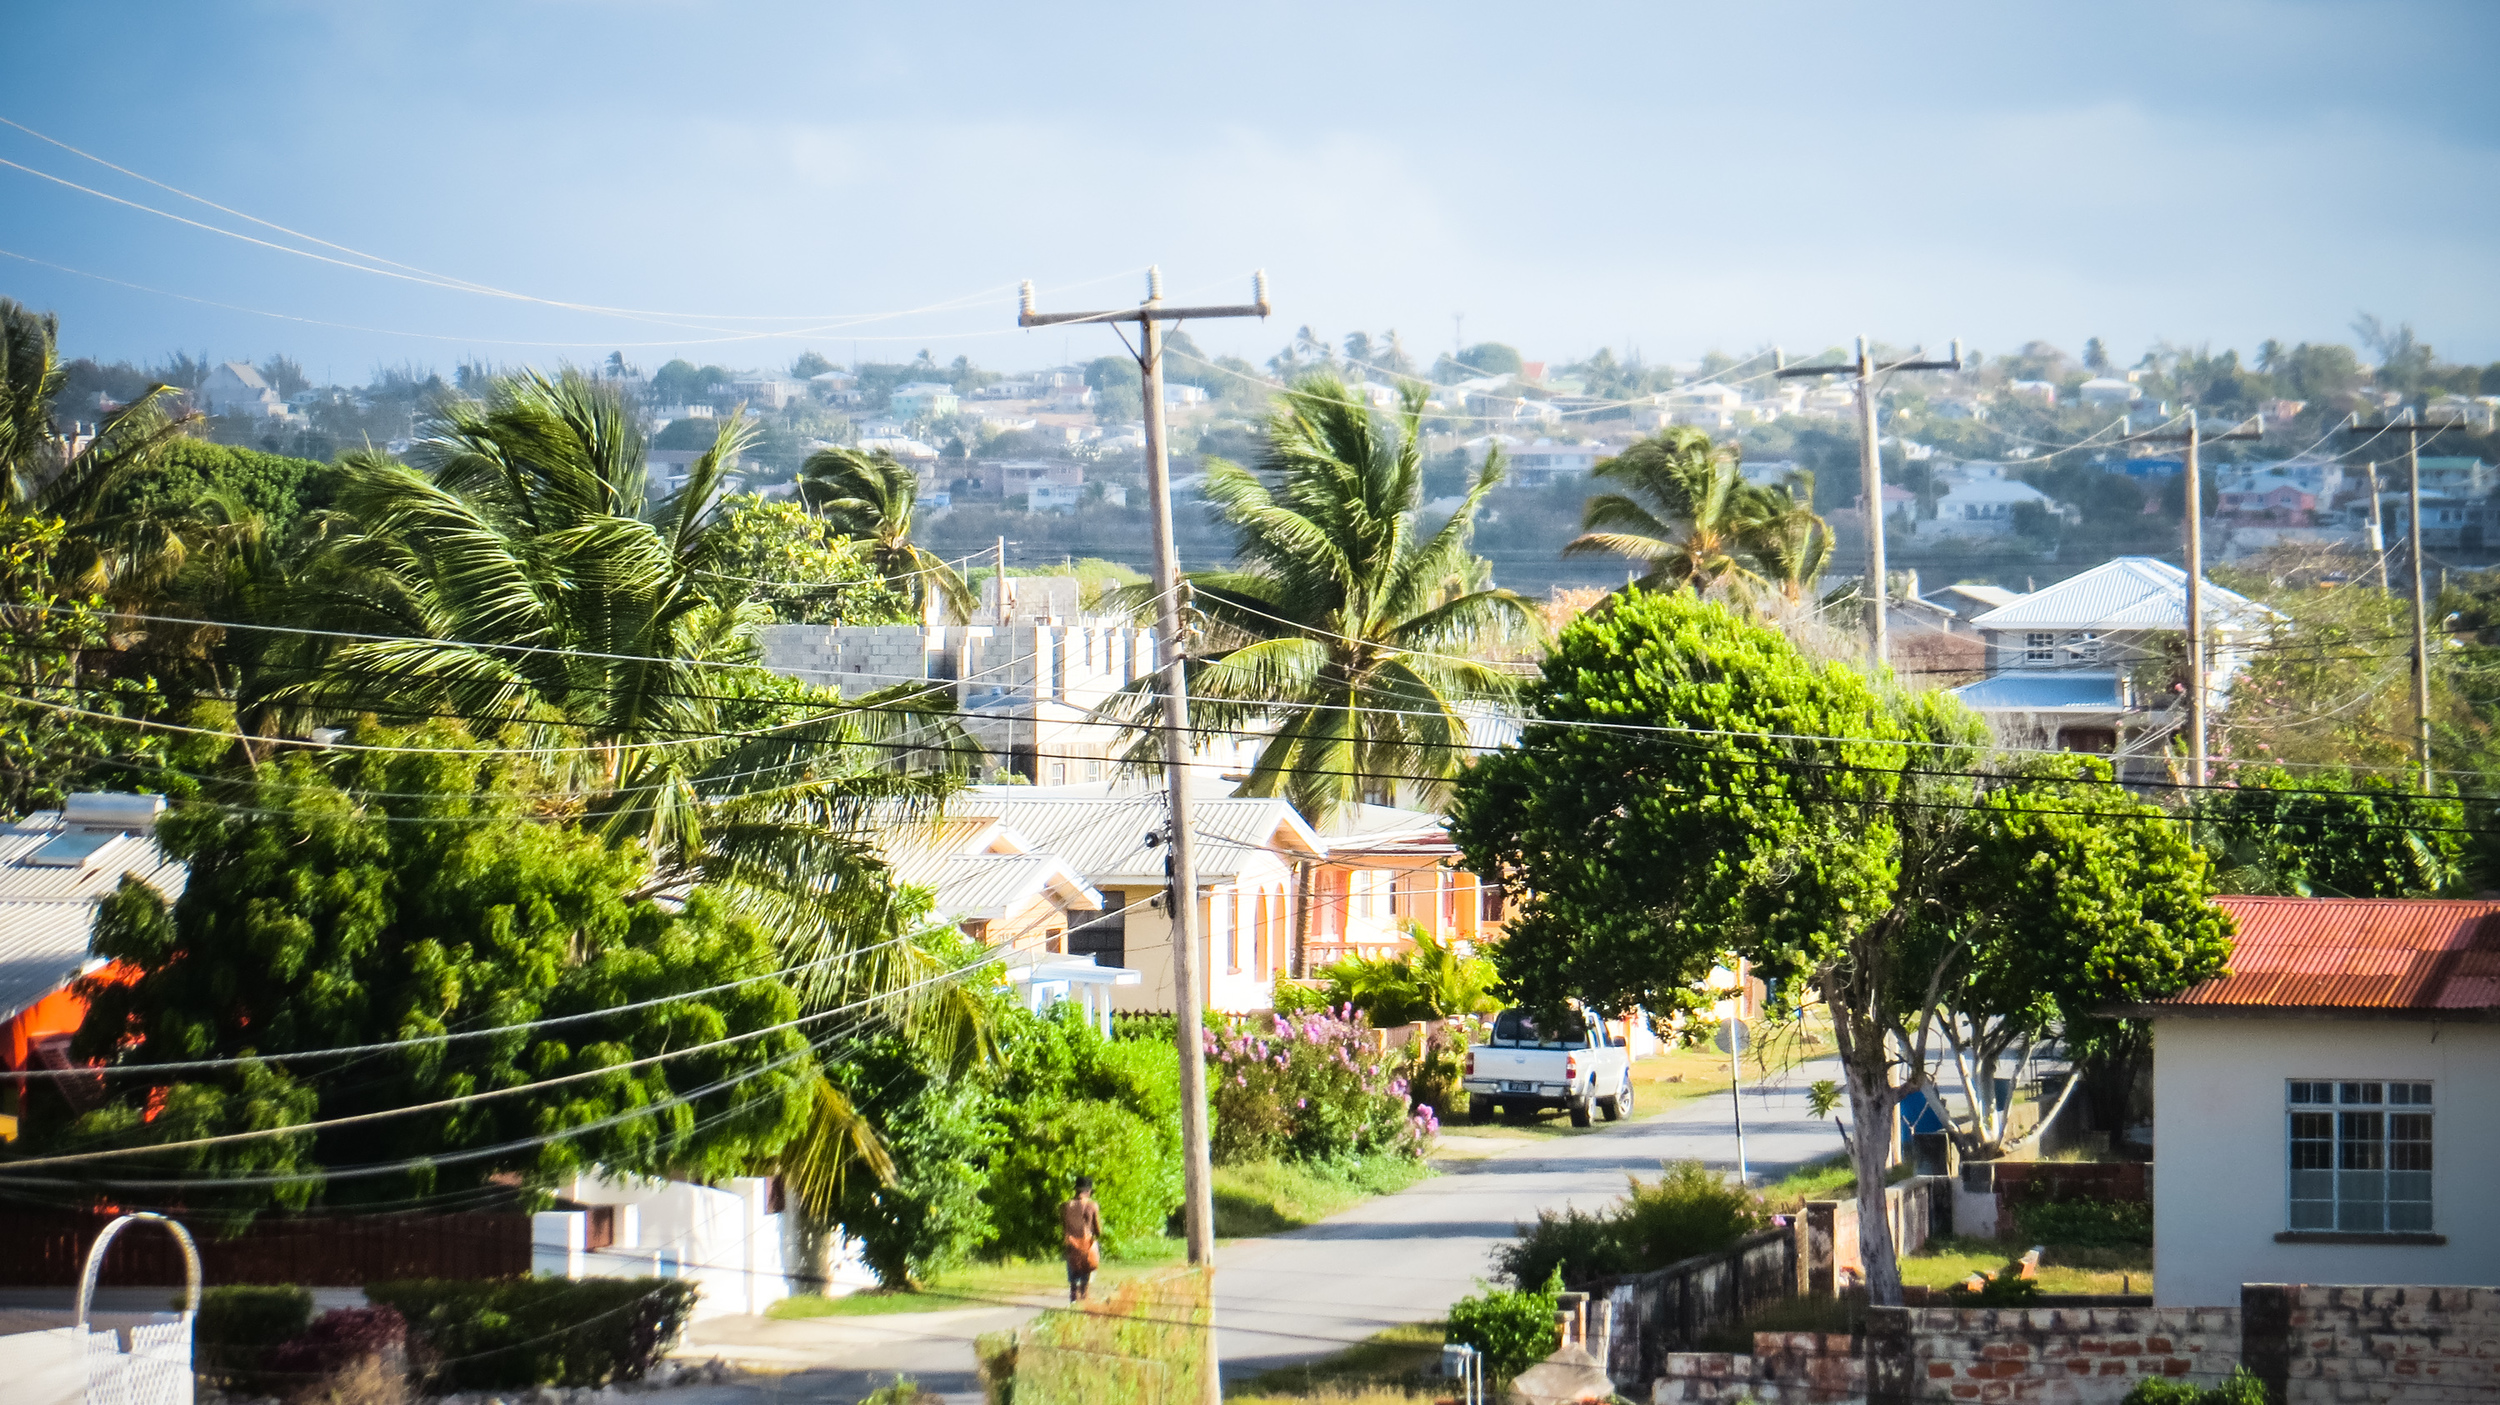 Local streetscape: well kept homes and tidy tropical trees.